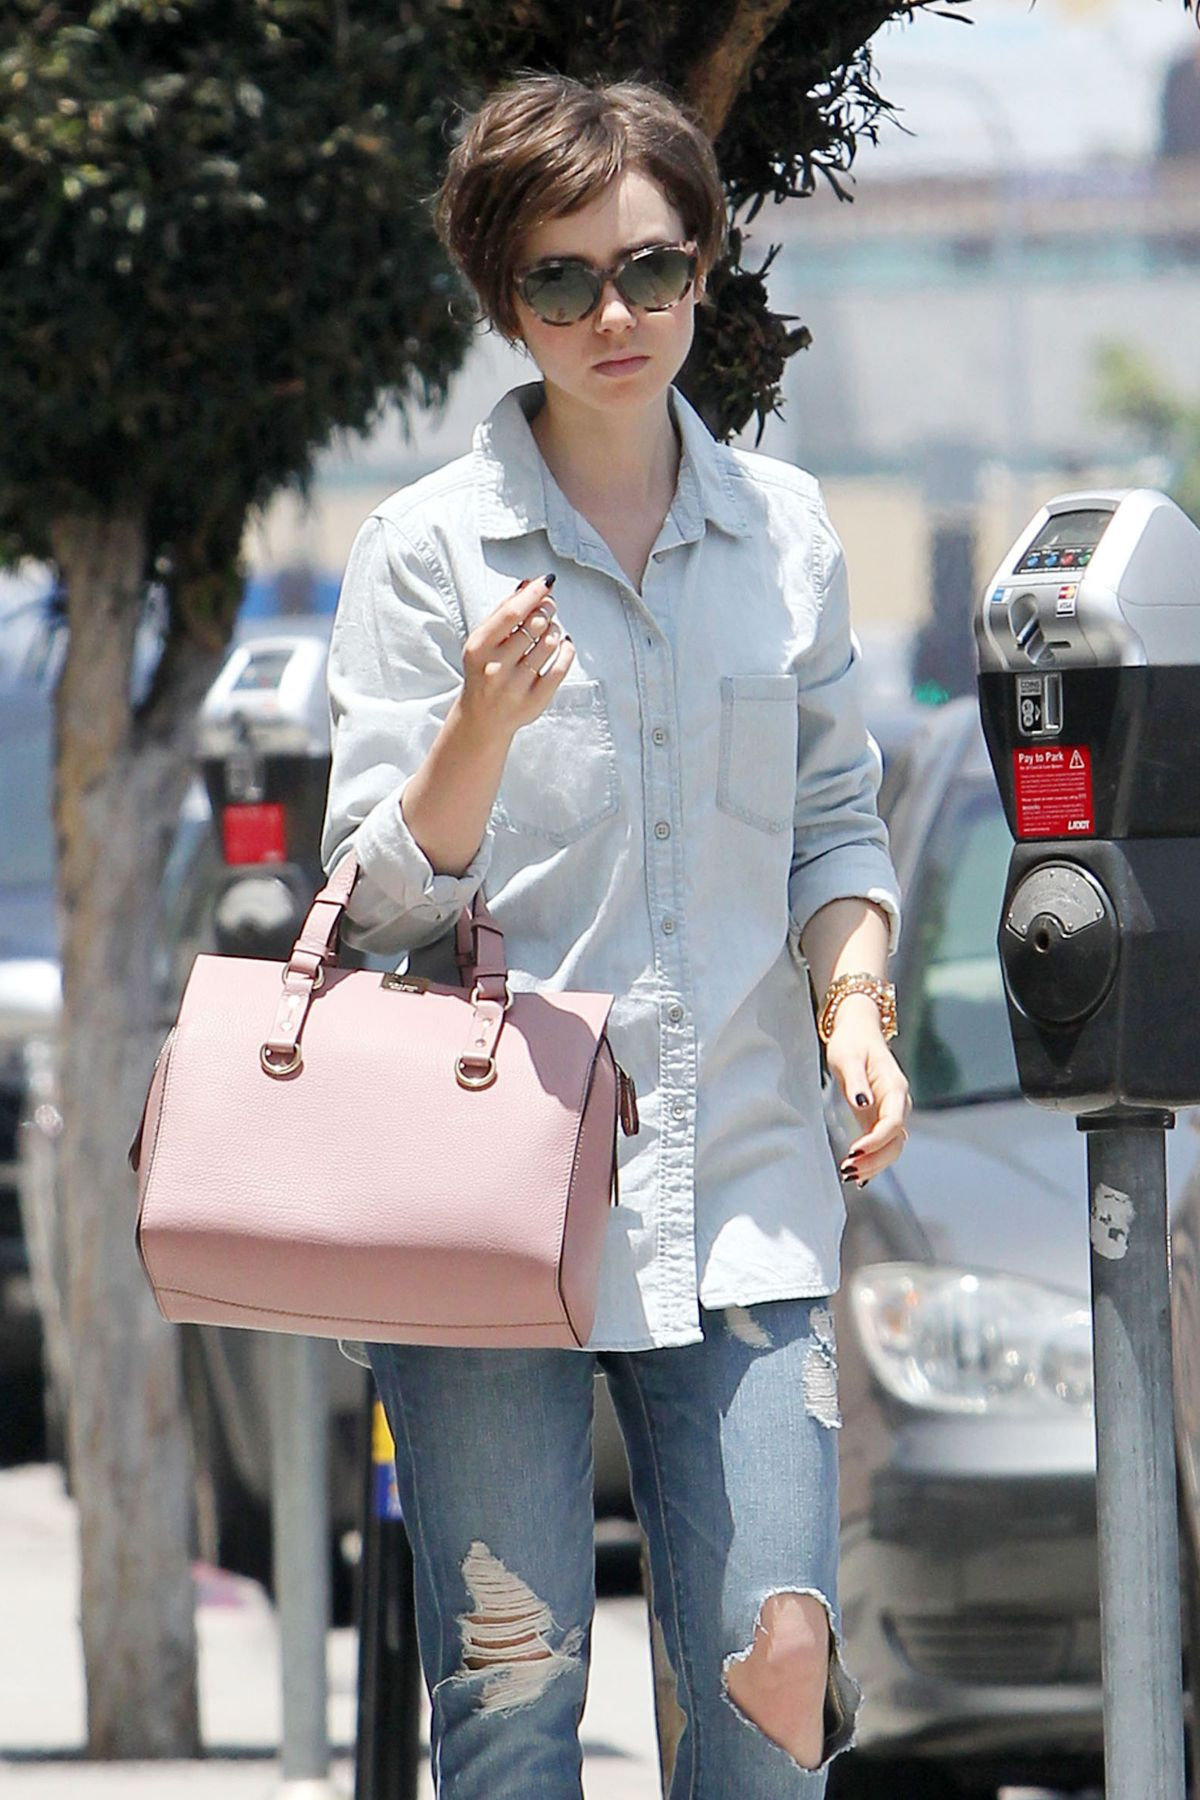 LILY COLLINS in Ripped Jeans Heading to a Nail Salon in West Hollywood 05/29/2015